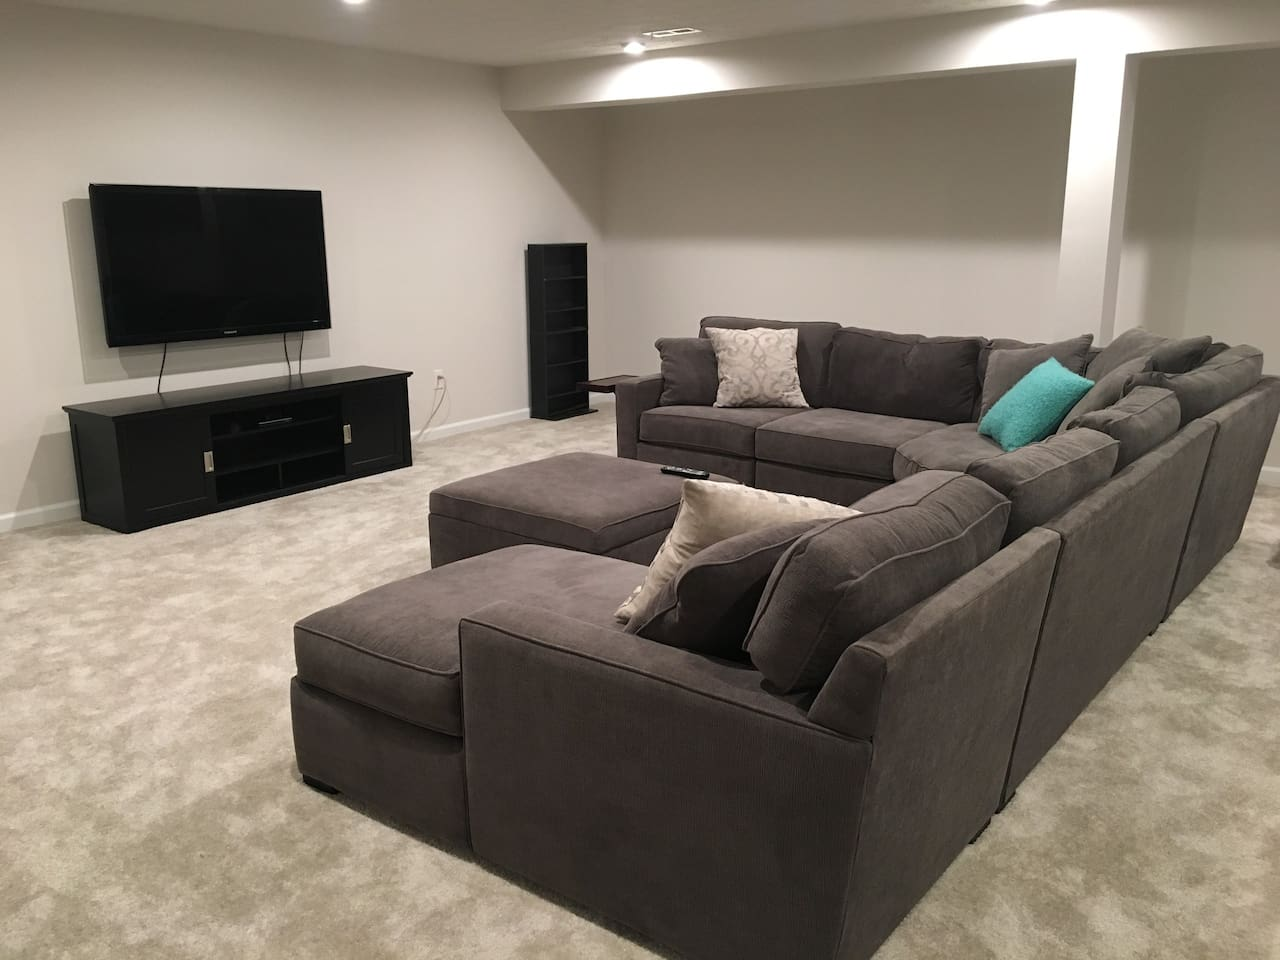 Great comfy sectional and big screen tv!